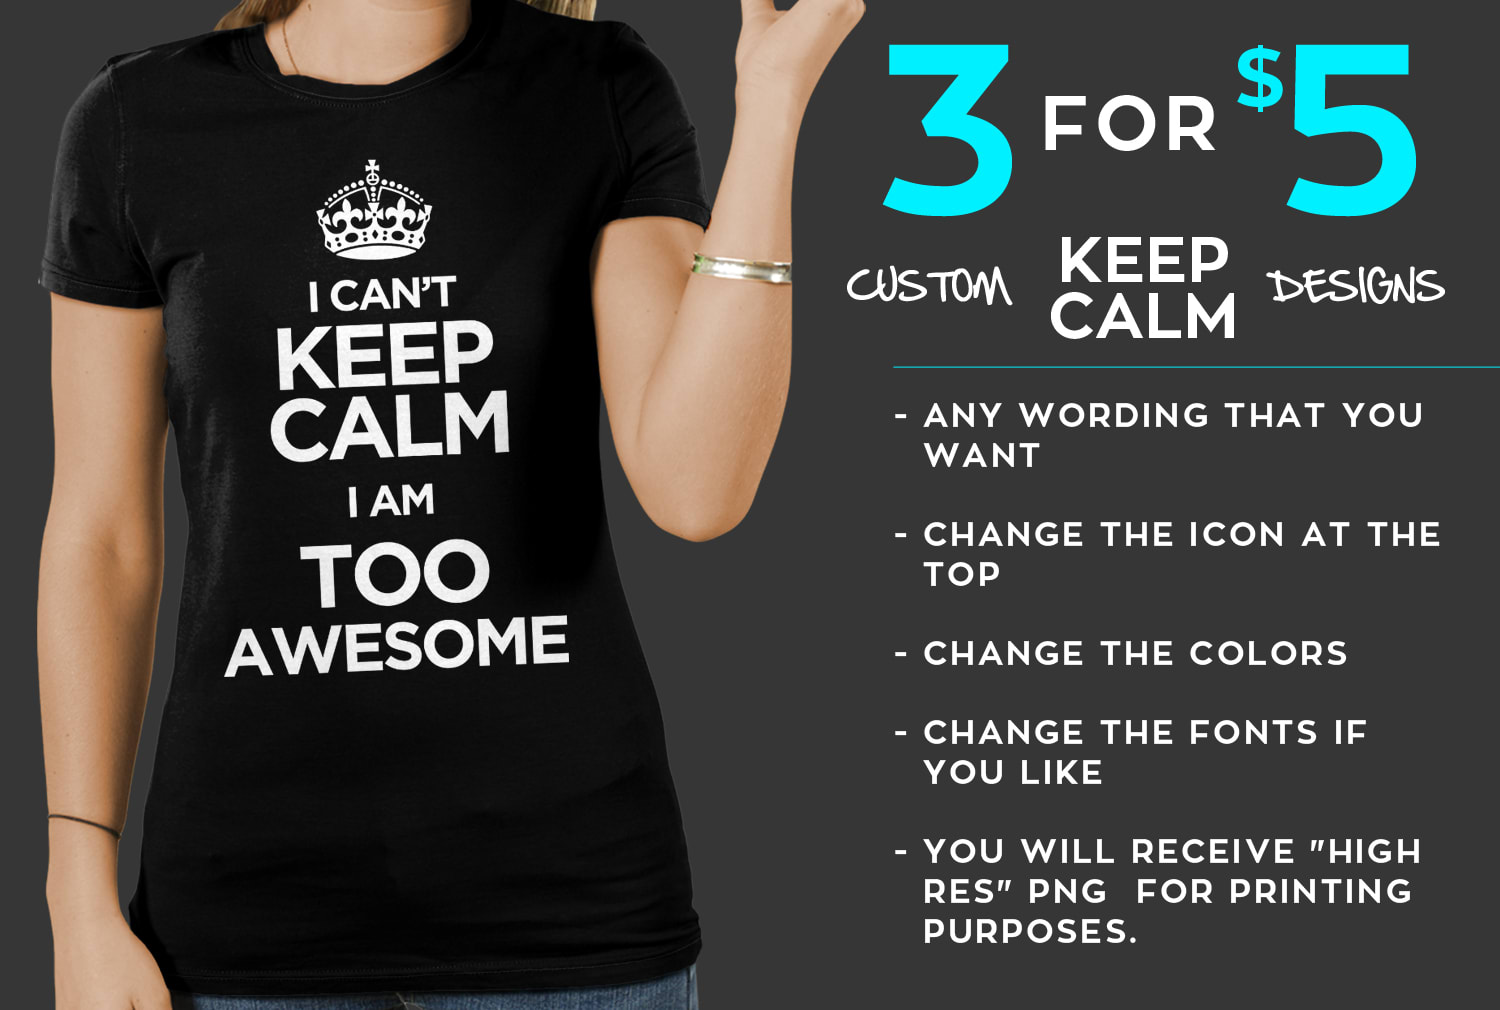 Create 3 Custom Keep Calm Designs For Posters Or Tshirts By Manishman592